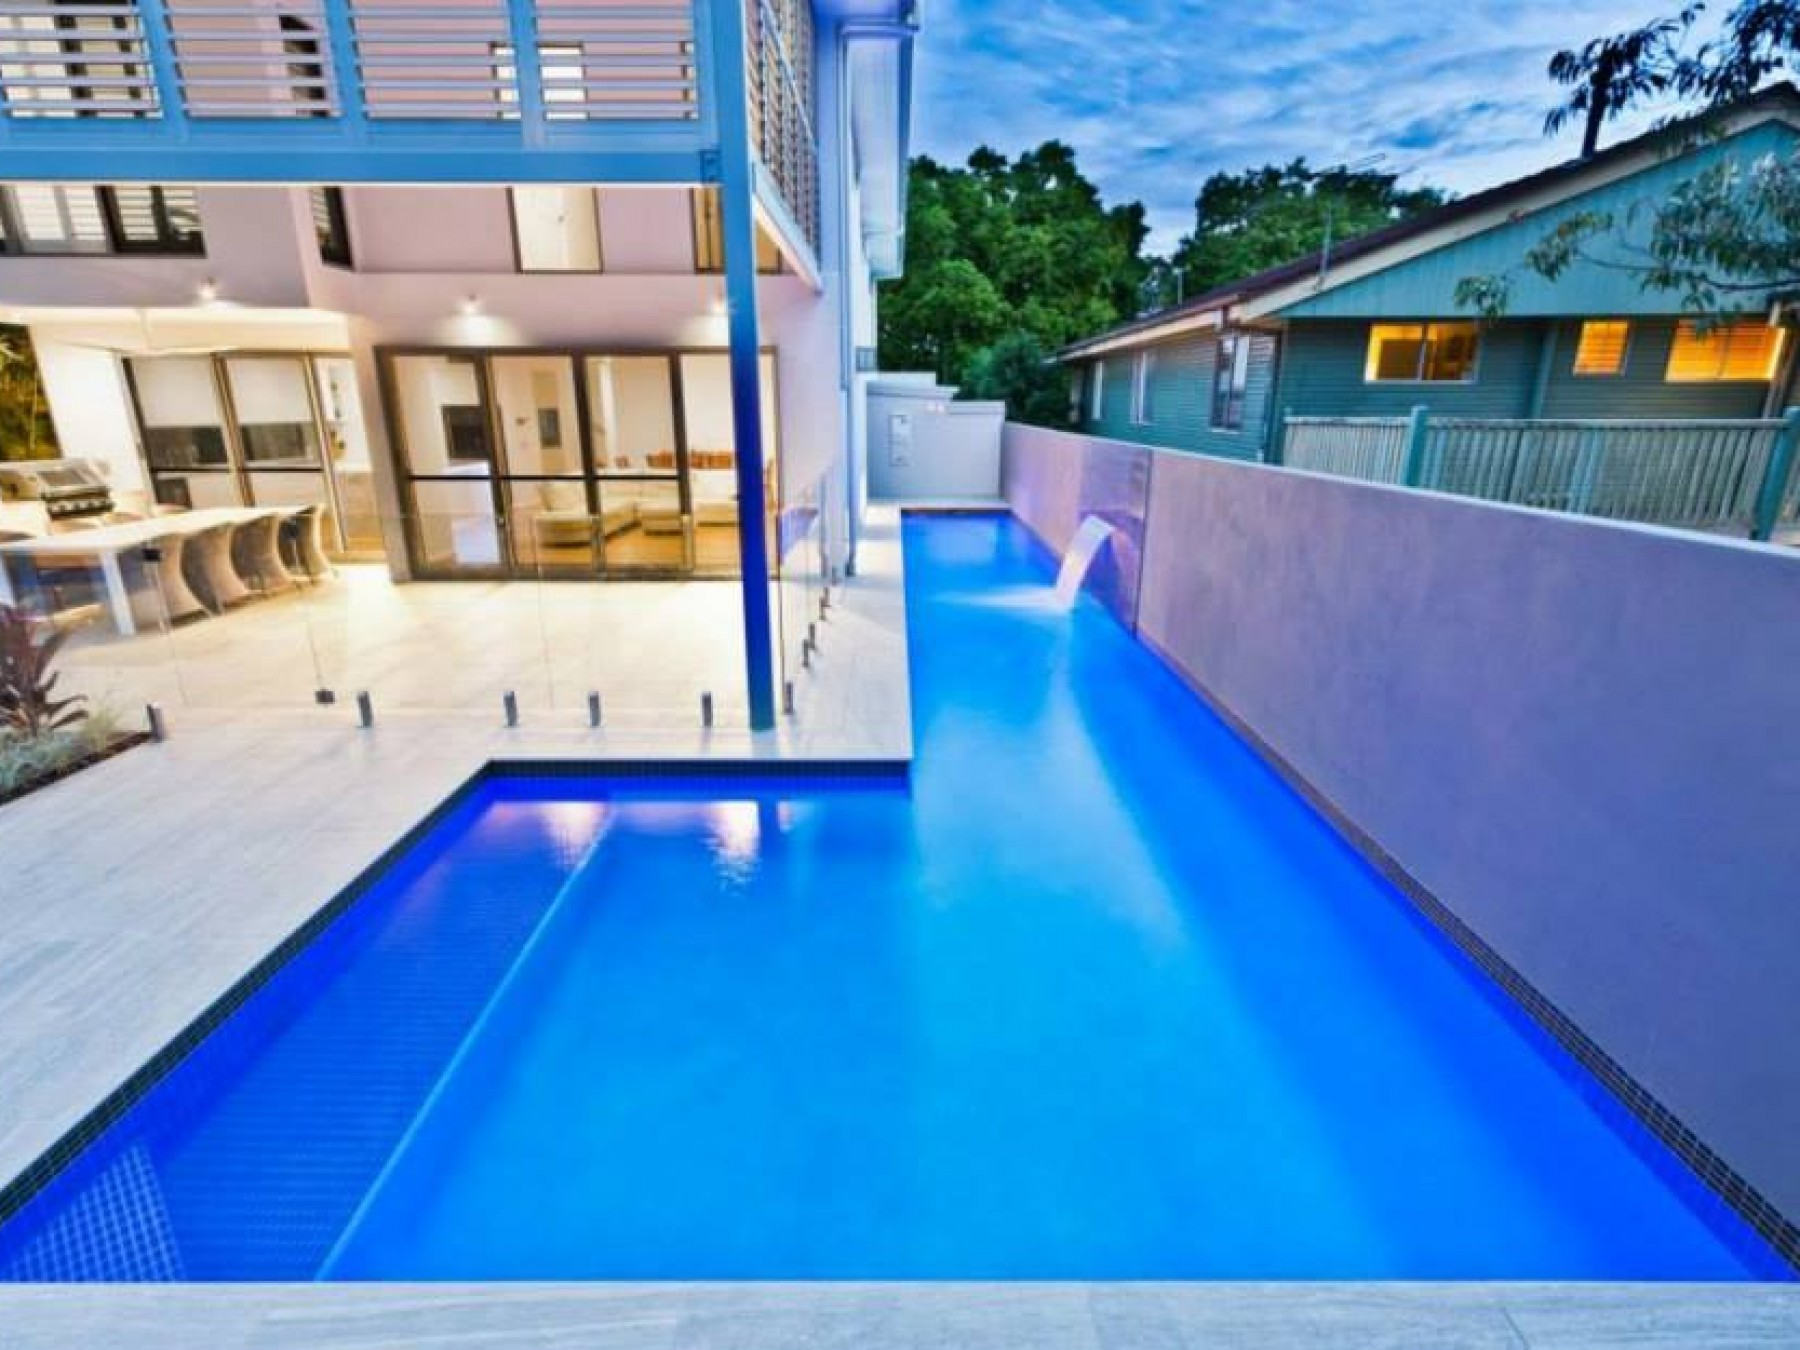 Selling or Leasing a pool in Bunya